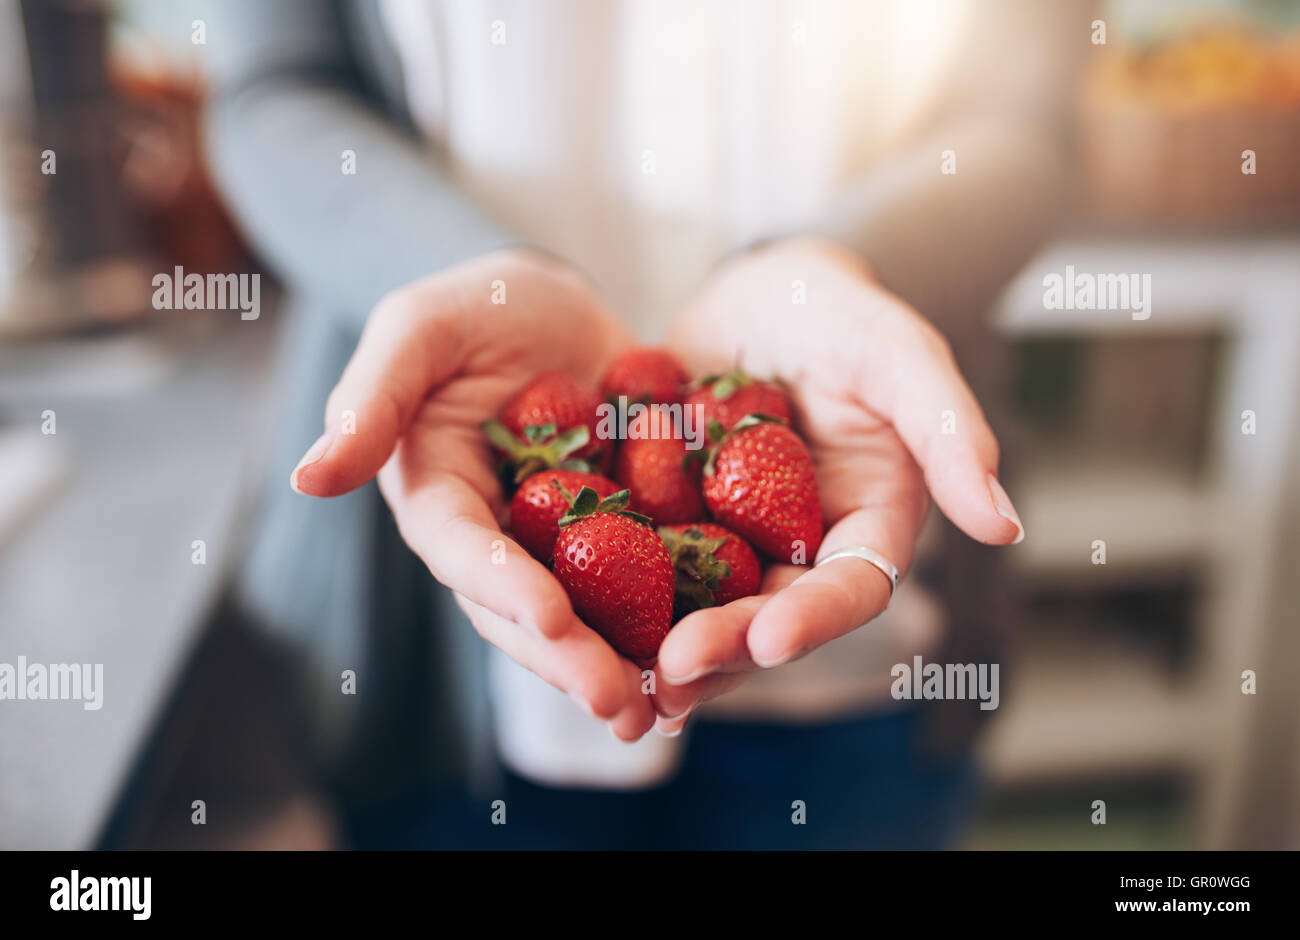 Cropped image a woman's hands holding a bunch of strawberries. Female holding a handful of fresh strawberries. - Stock Image